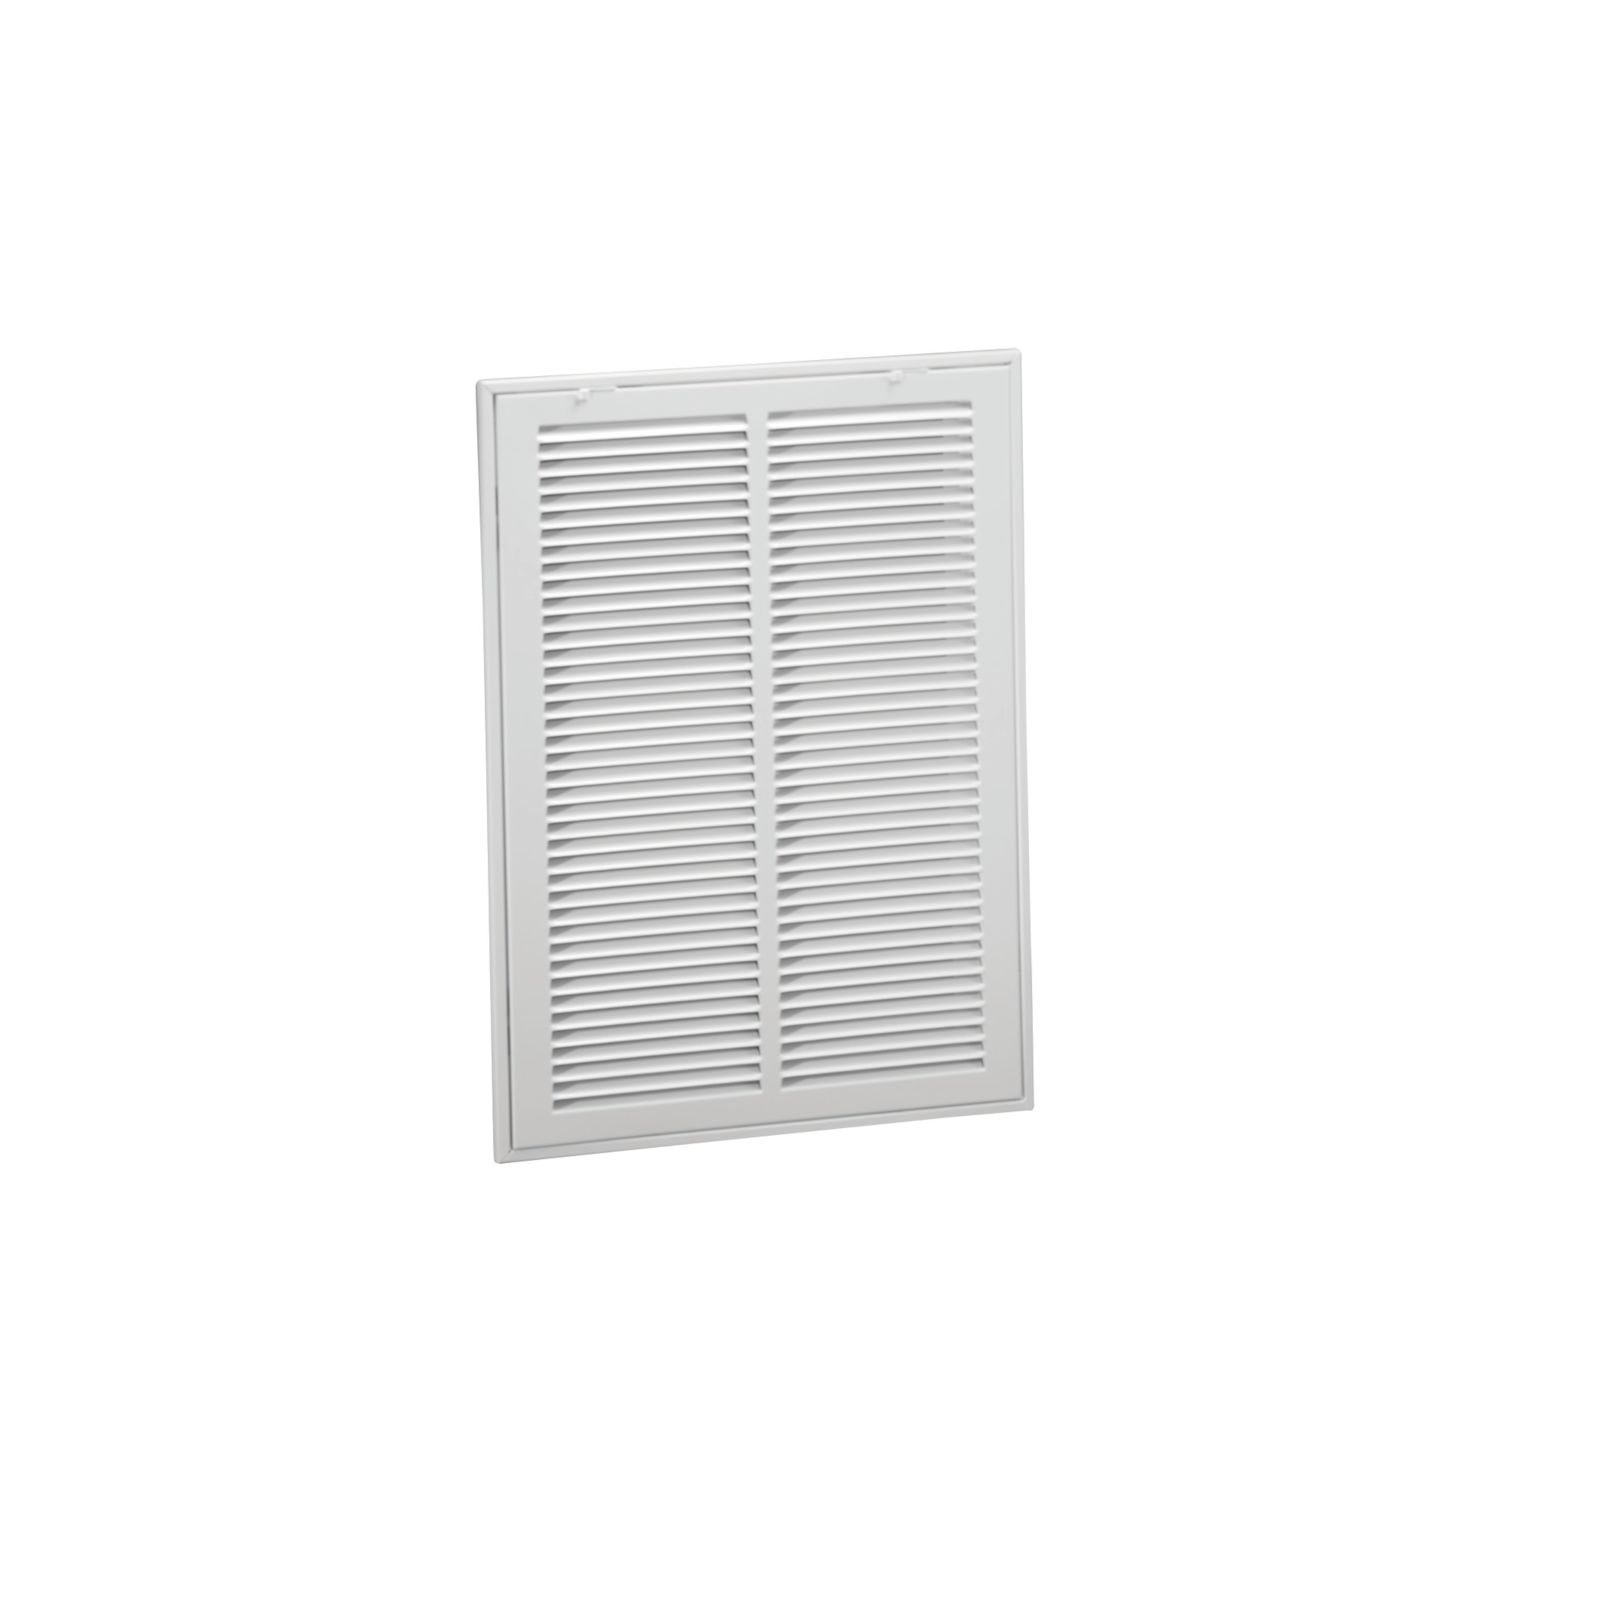 "Hart & Cooley 703992 - #673M Steel Return Air Filter Grille, White Finish, 14"" X 14"""